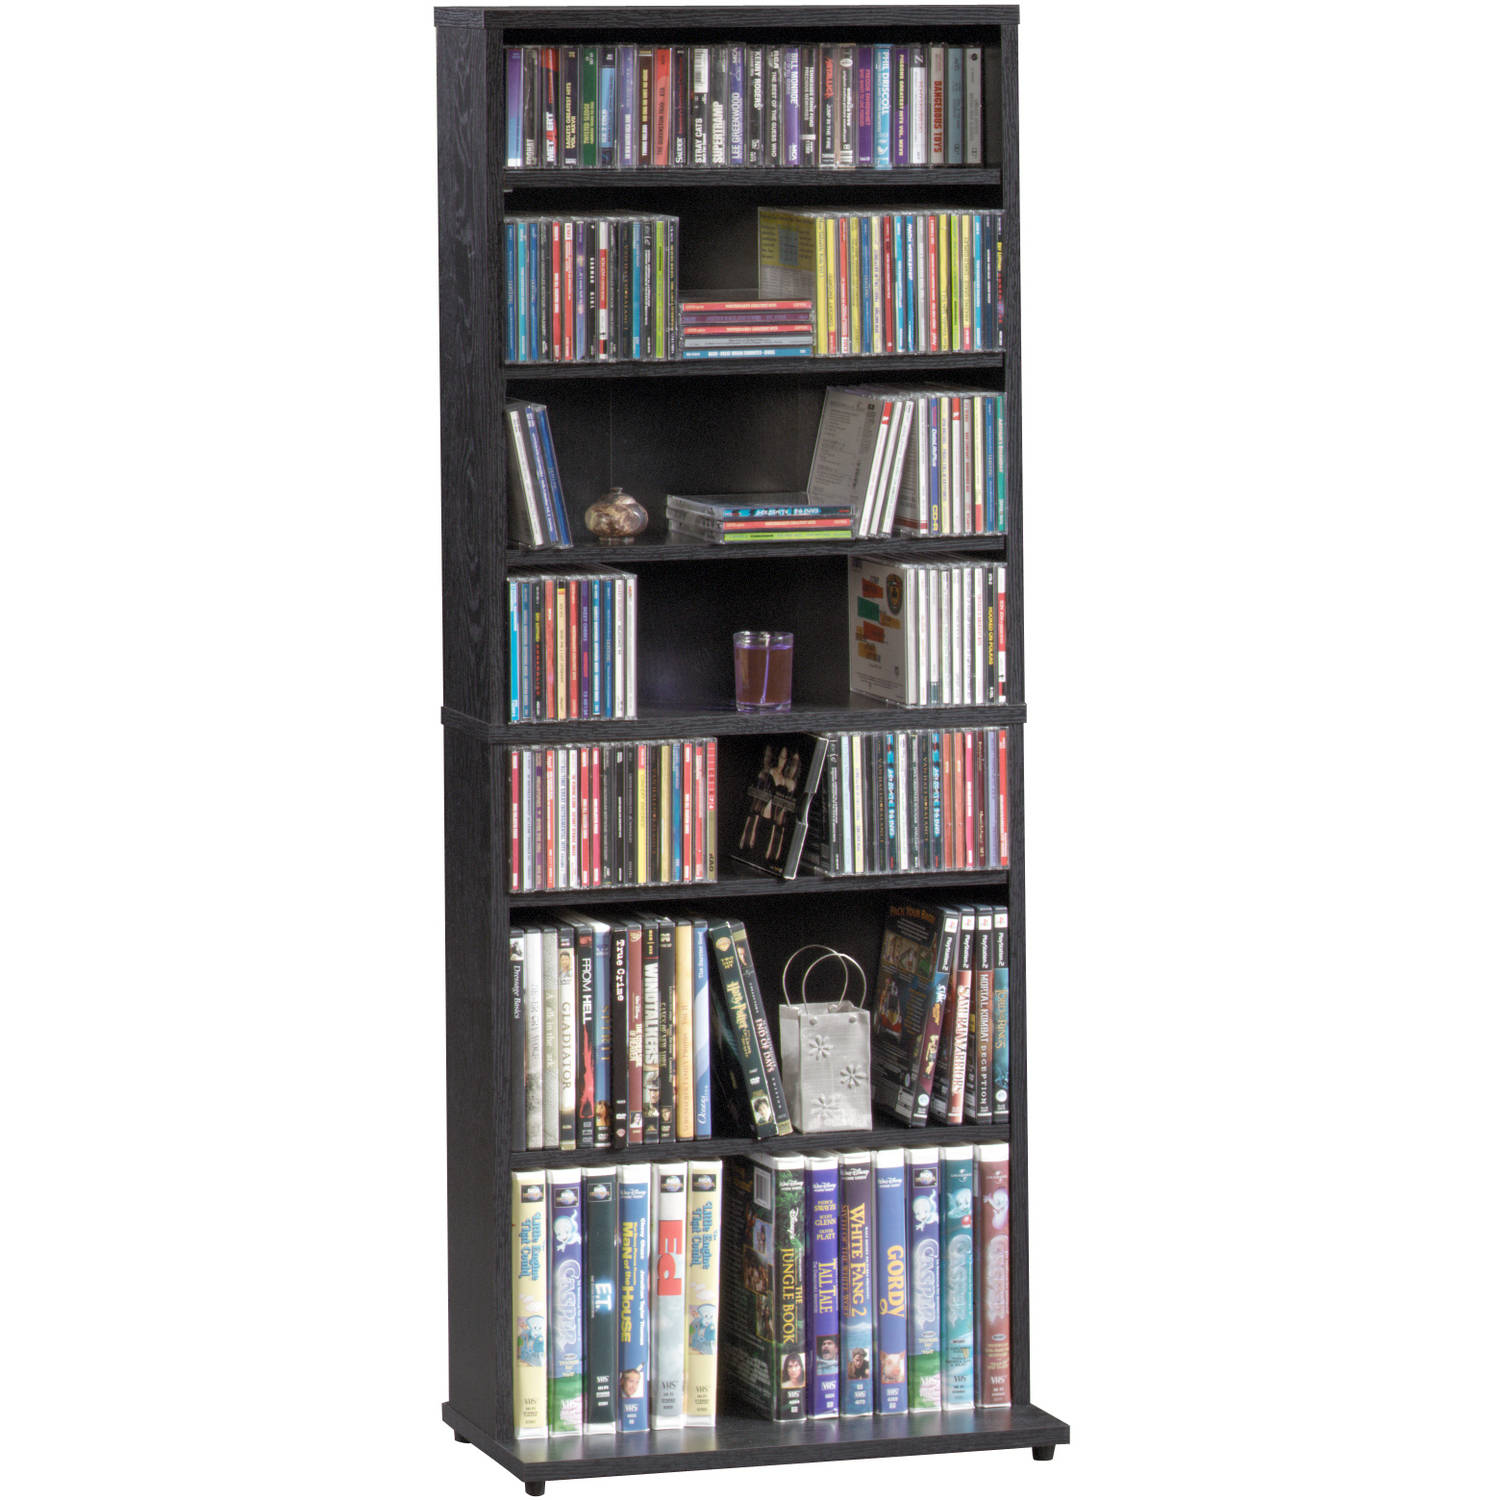 Walmart Shelving | Shelves in Walmart | Walmart Book Shelves